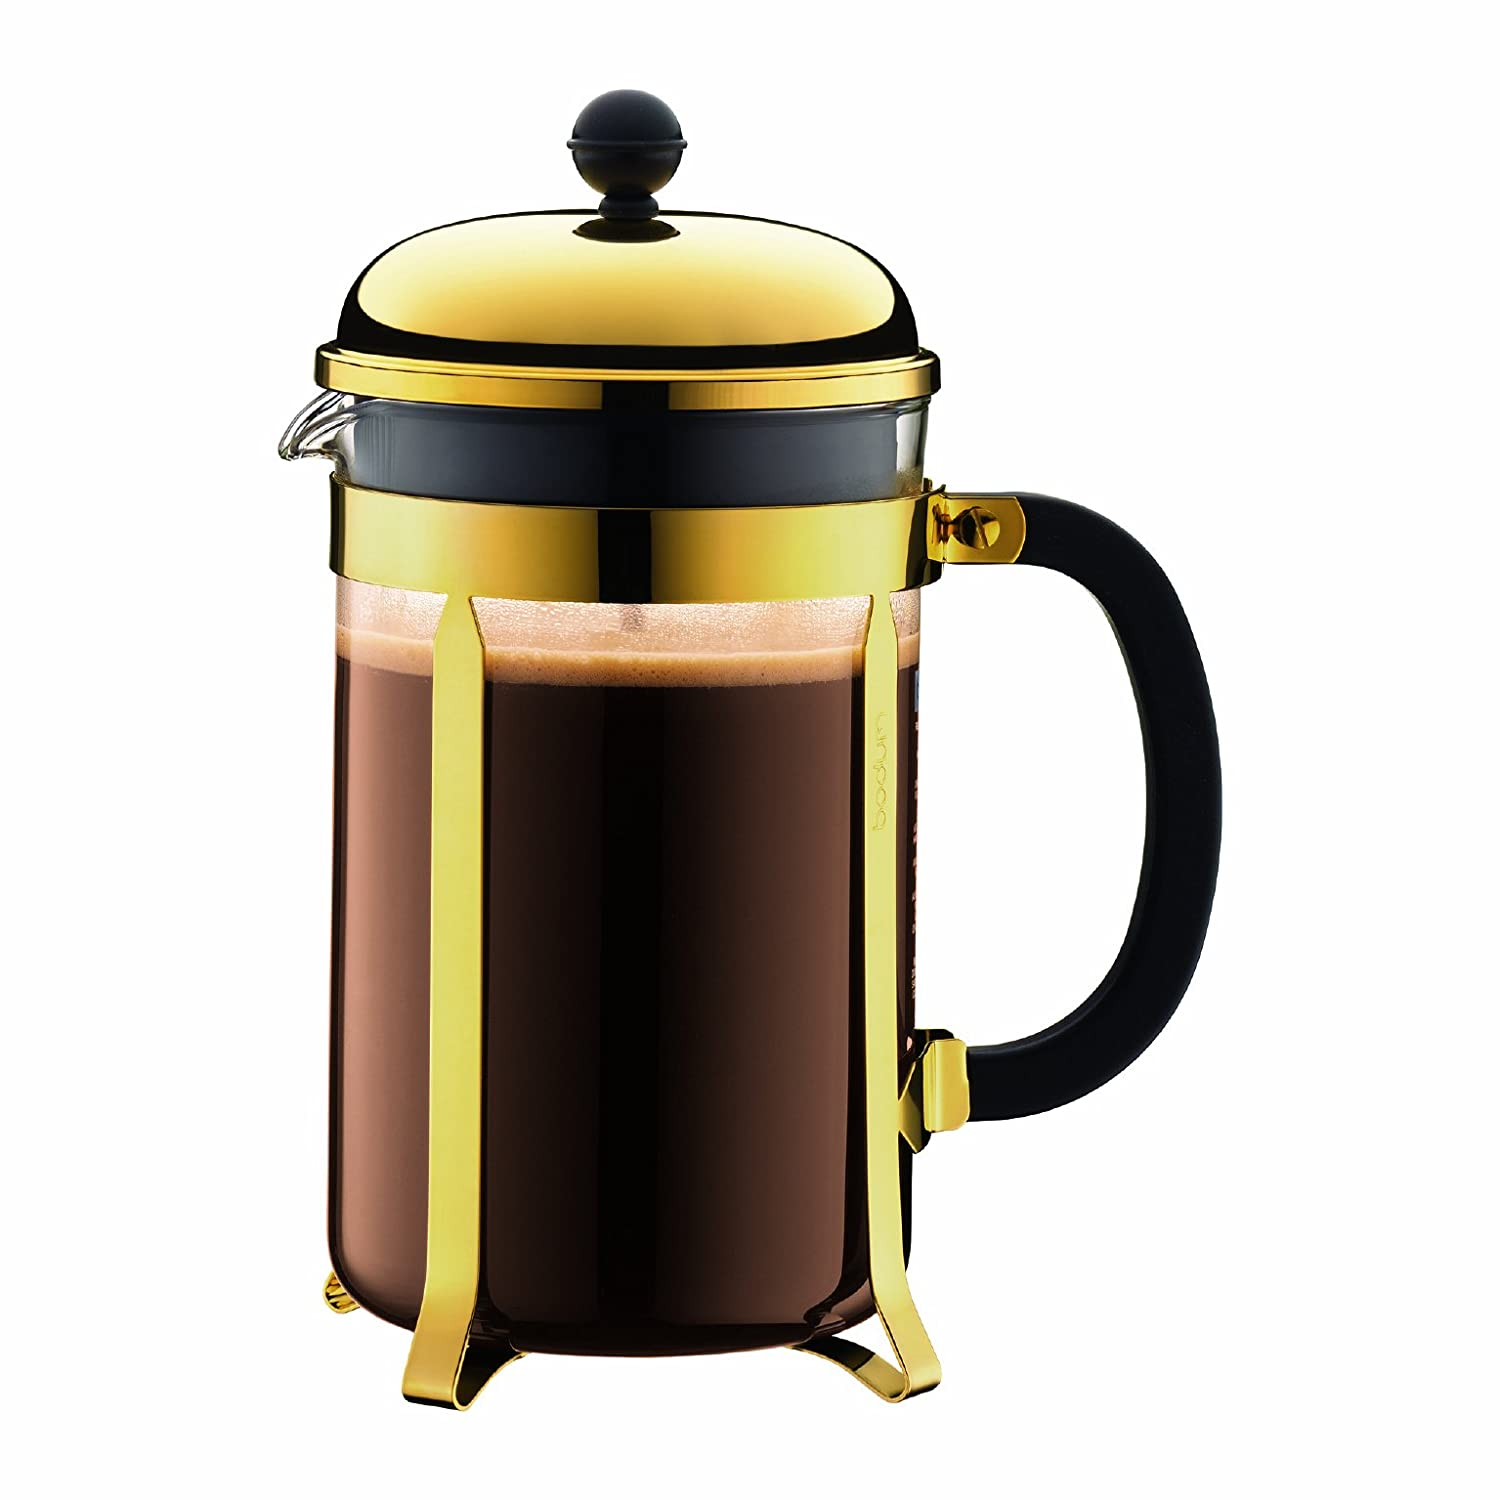 BODUM Chambord 3-Cup Coffee Maker, 0.35 Litre/ 12oz 1923-17